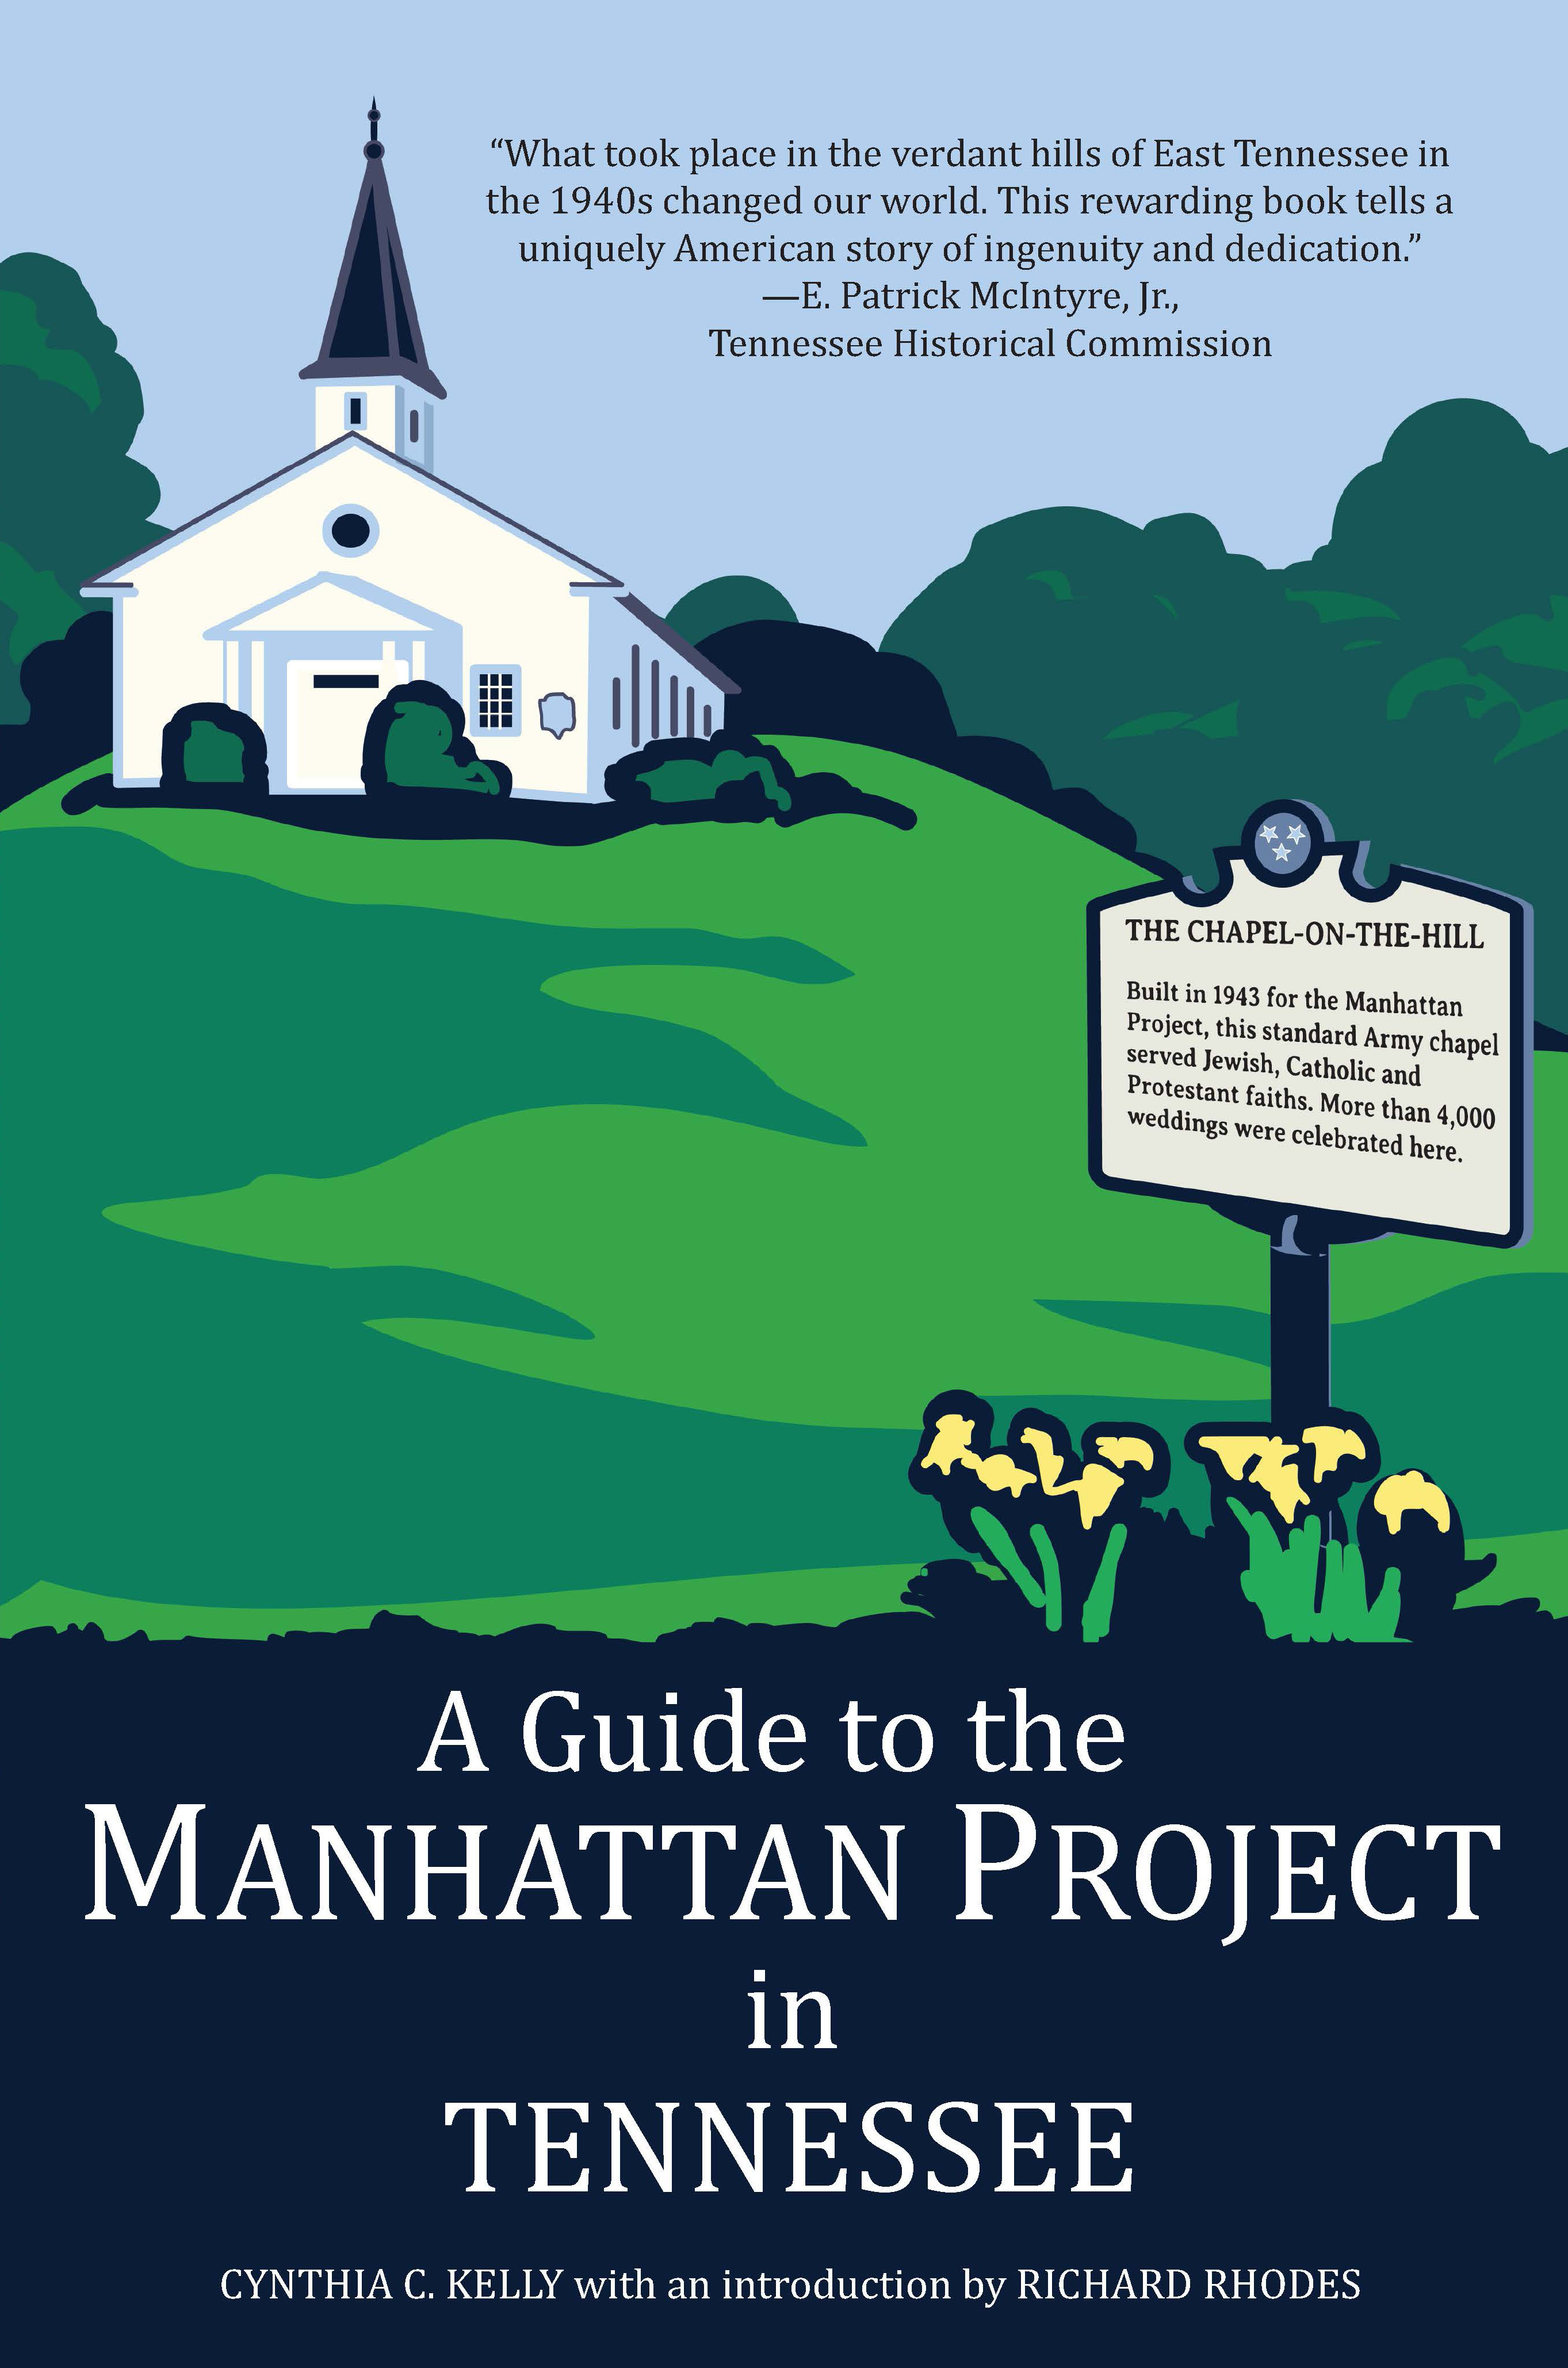 ahf release  guide to manhattan project in tennessee redux